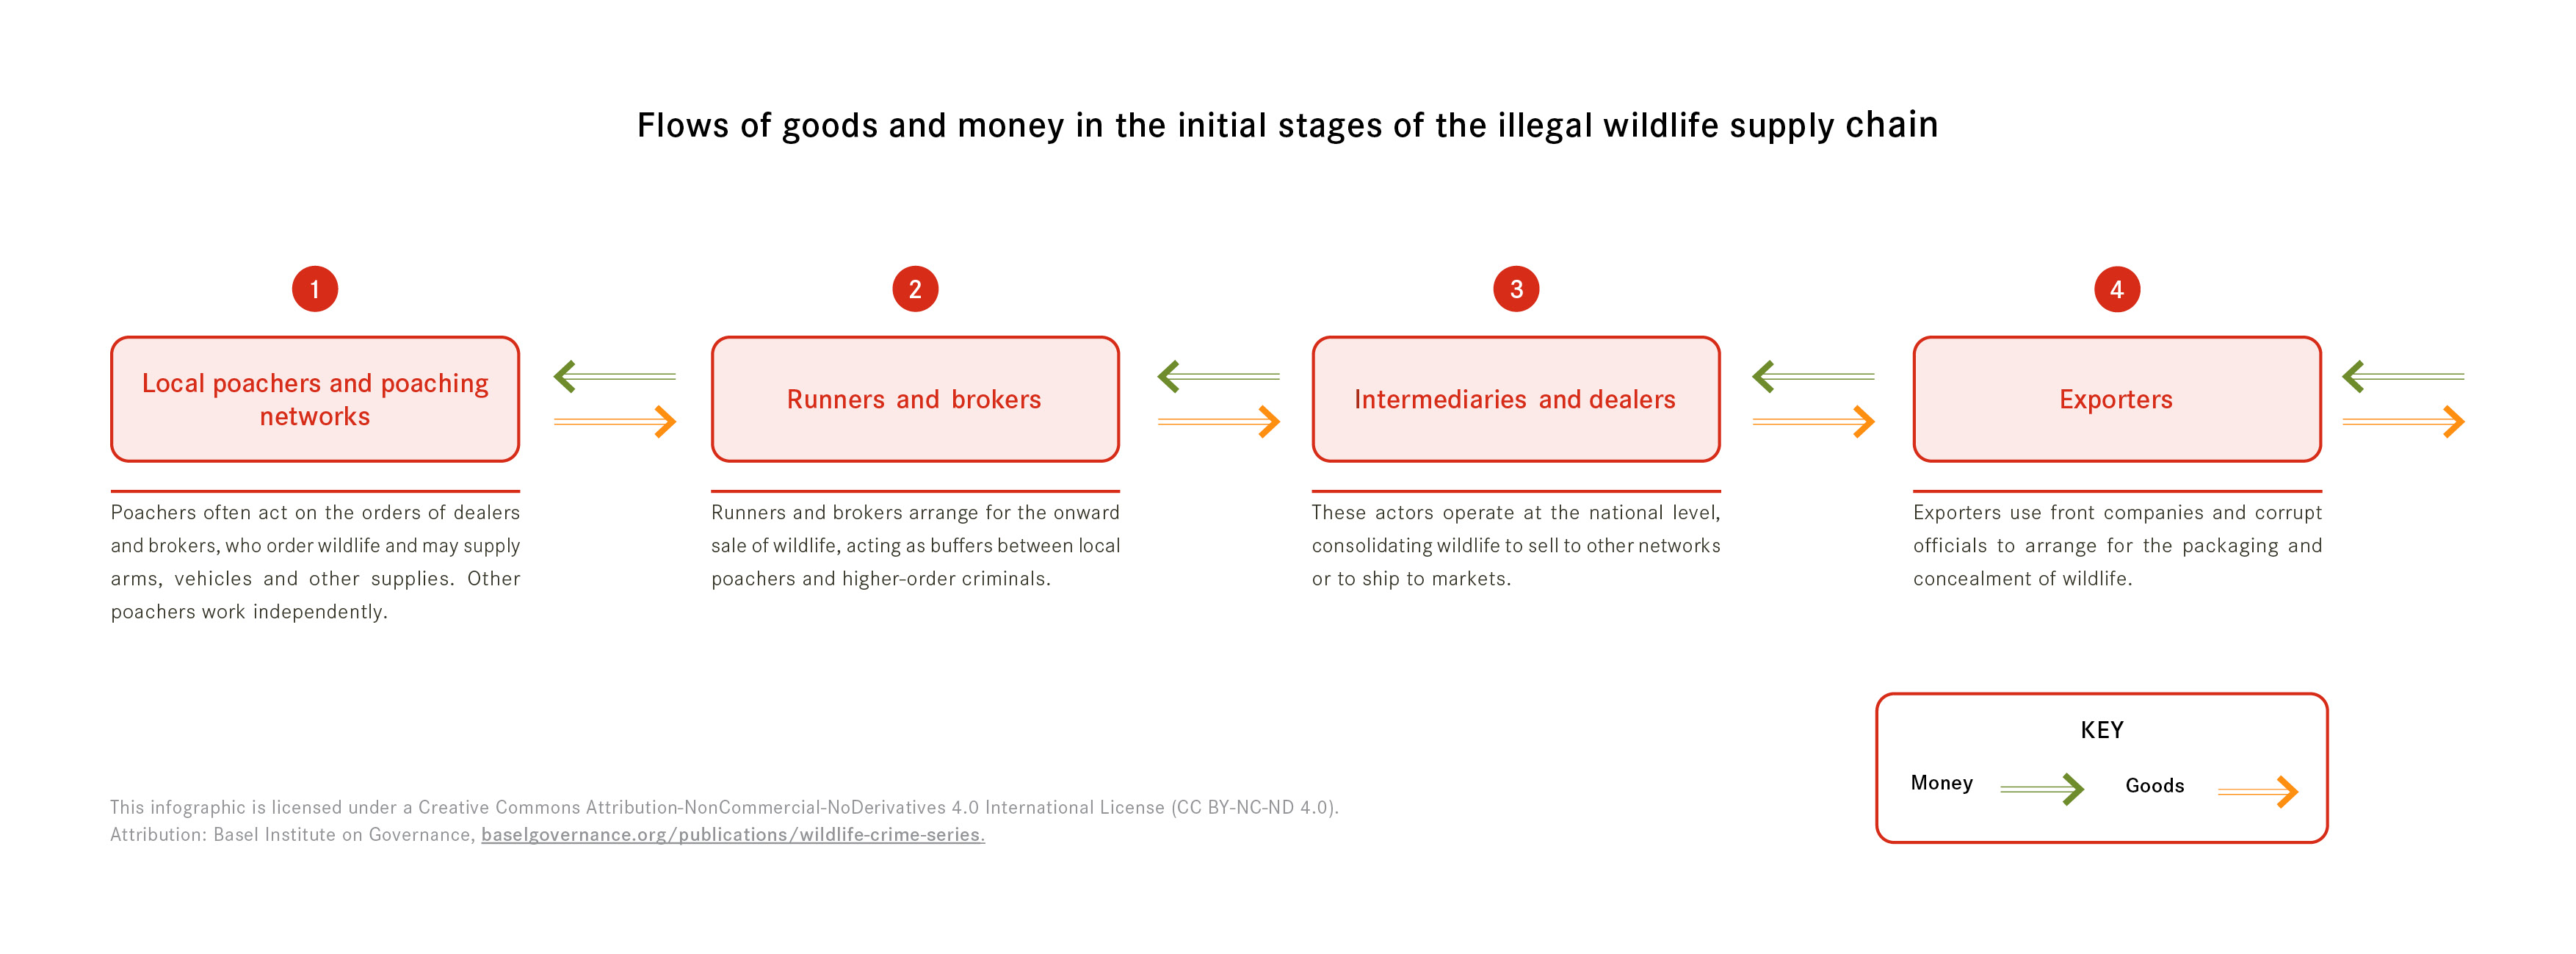 Wildlife crime 2: flows of goods and money in the early stages of IWT supply chains